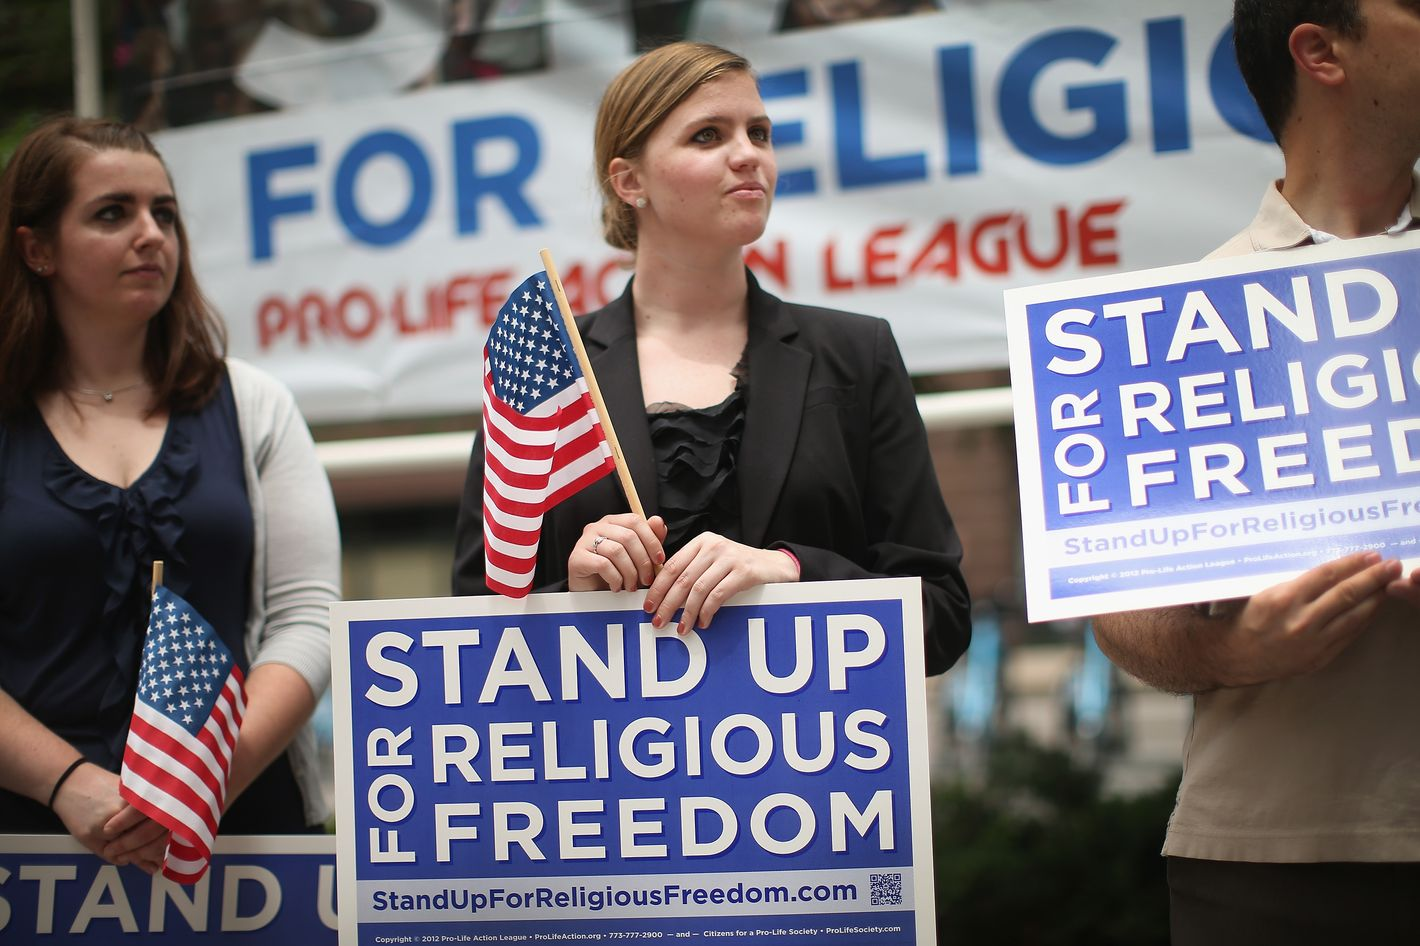 CHICAGO, IL - JUNE 30:  Religious freedom supporters hold a rally to praise the Supreme Court's decision in the Hobby Lobby, contraception coverage requirement case on June 30, 2014 in Chicago, Illinois. Oklahoma-based Hobby Lobby, which operates a chain of arts-and-craft stores, challenged the provision and the high court ruled 5-4 that requiring family-owned corporations to pay for insurance coverage for contraception under the Affordable Care Act violated a federal law protecting religious freedom.    (Photo by Scott Olson/Getty Images)